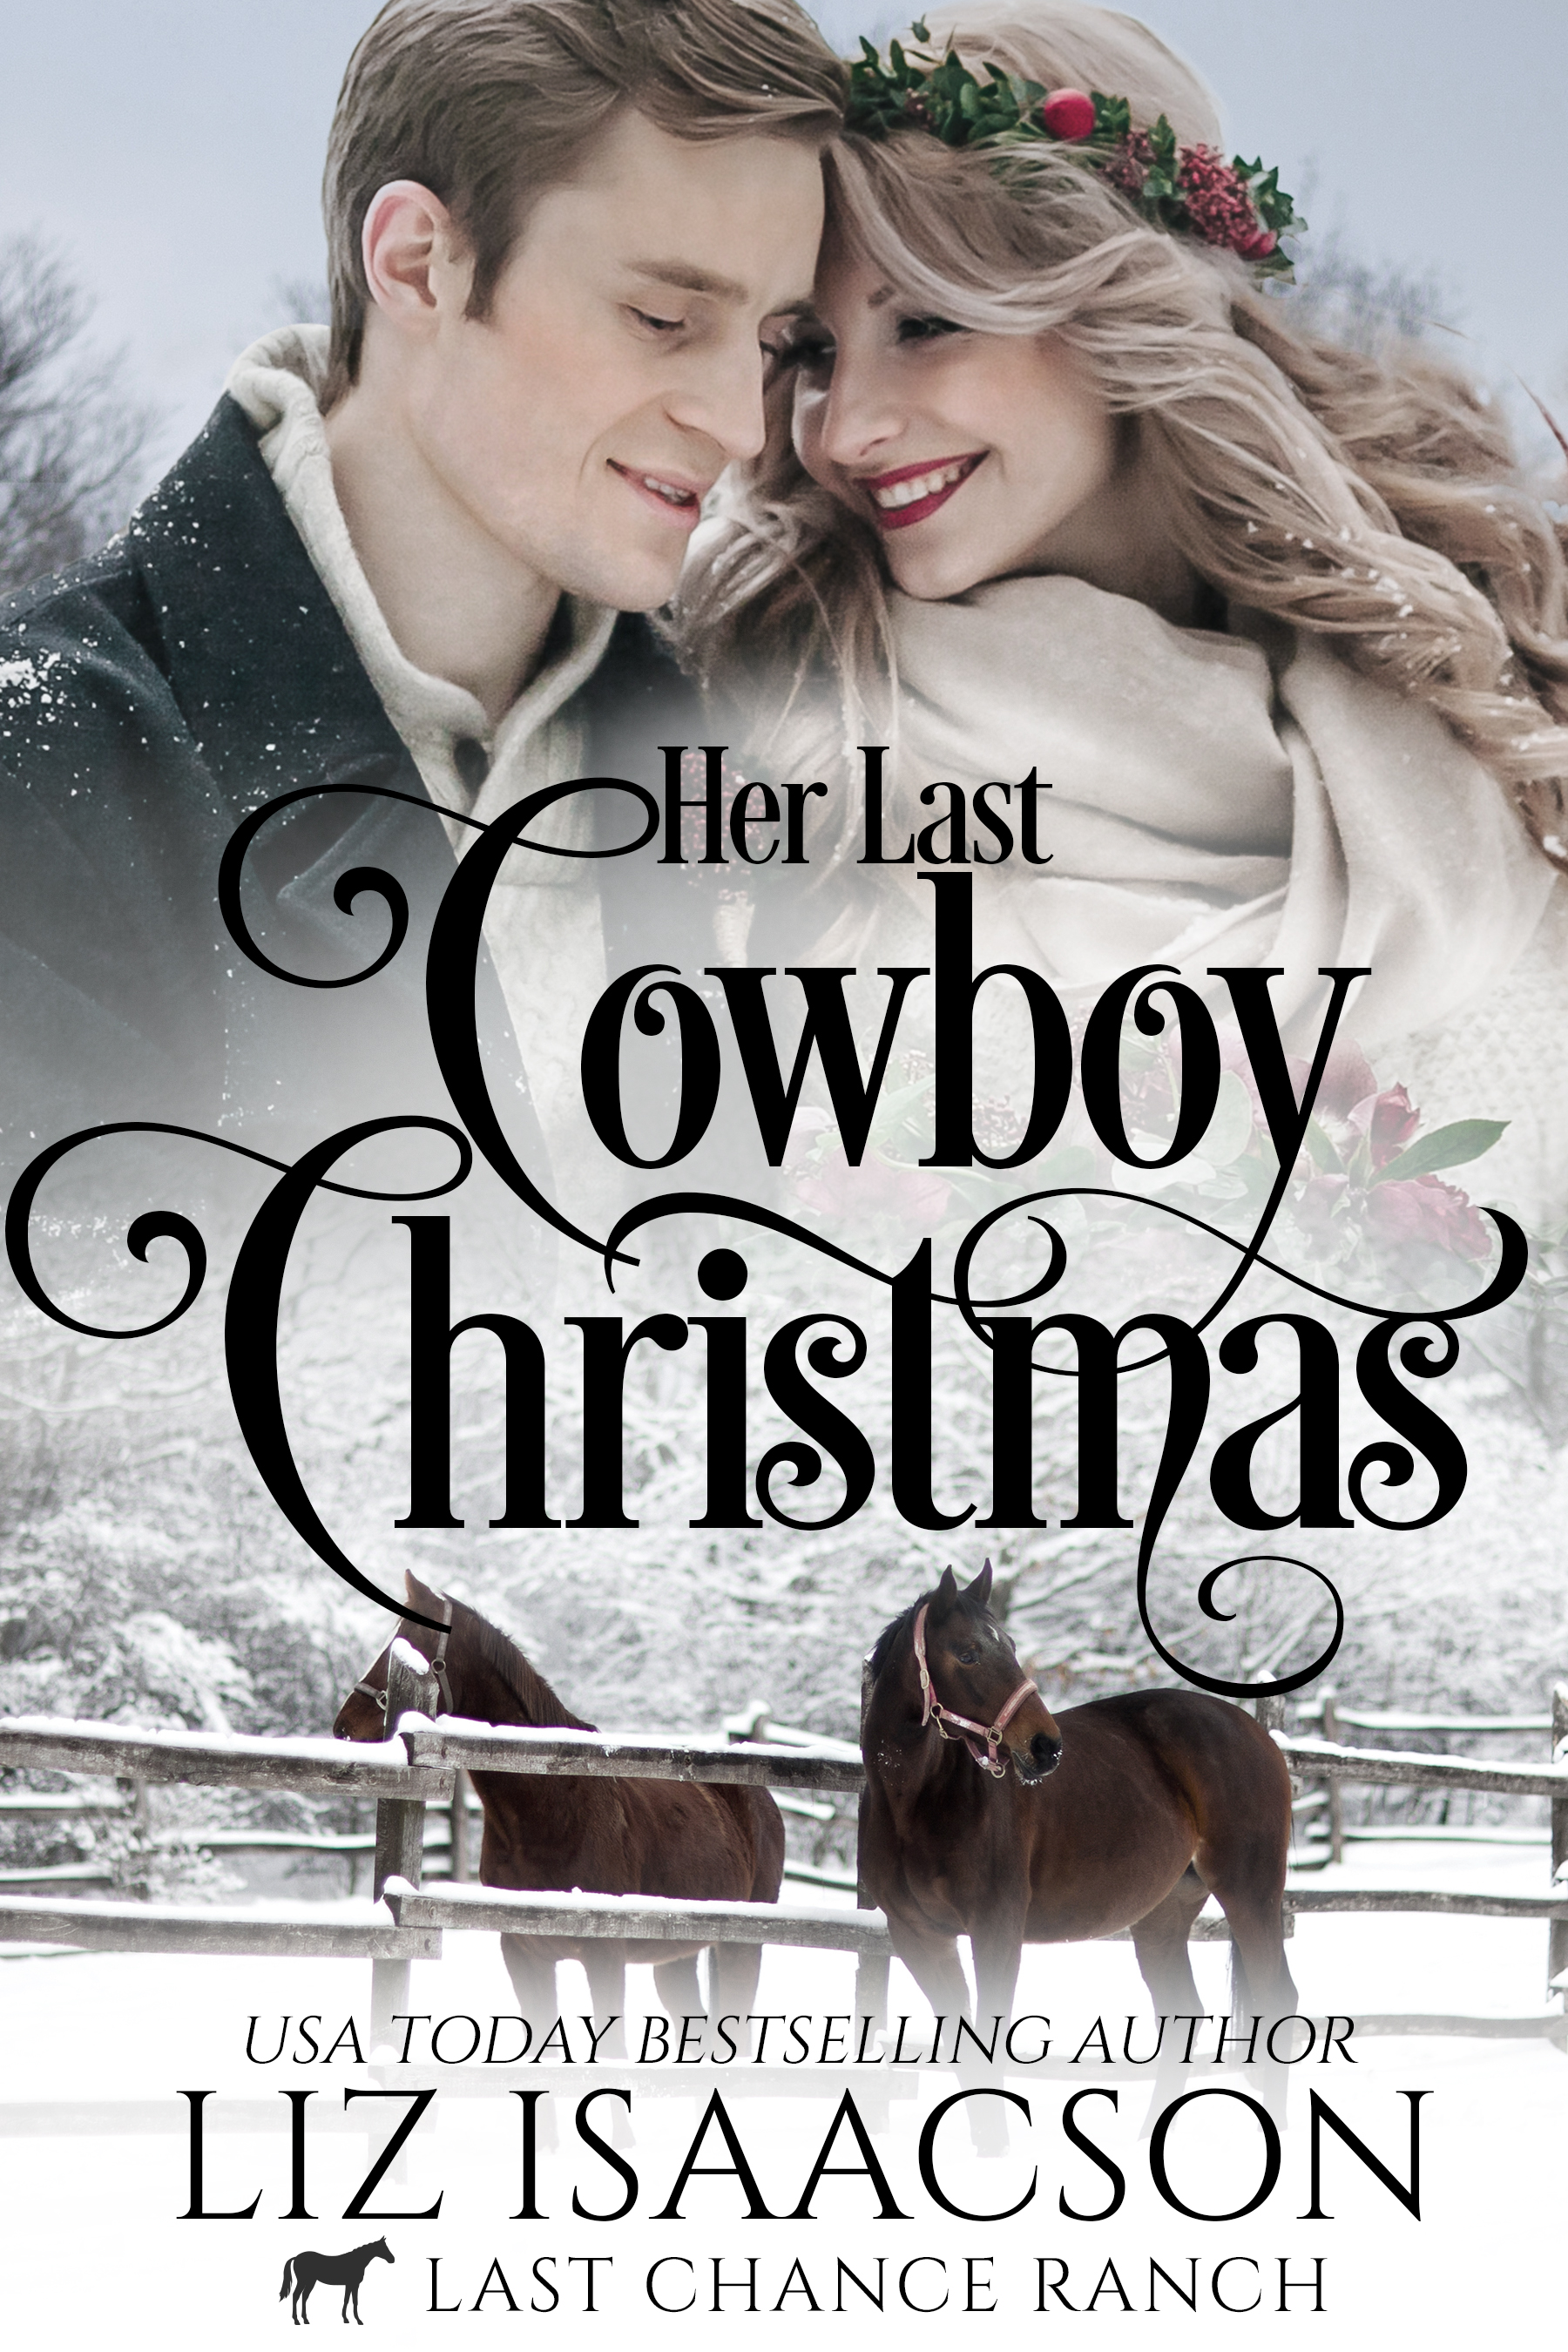 M1_Her_Last_Cowboy_Christmas